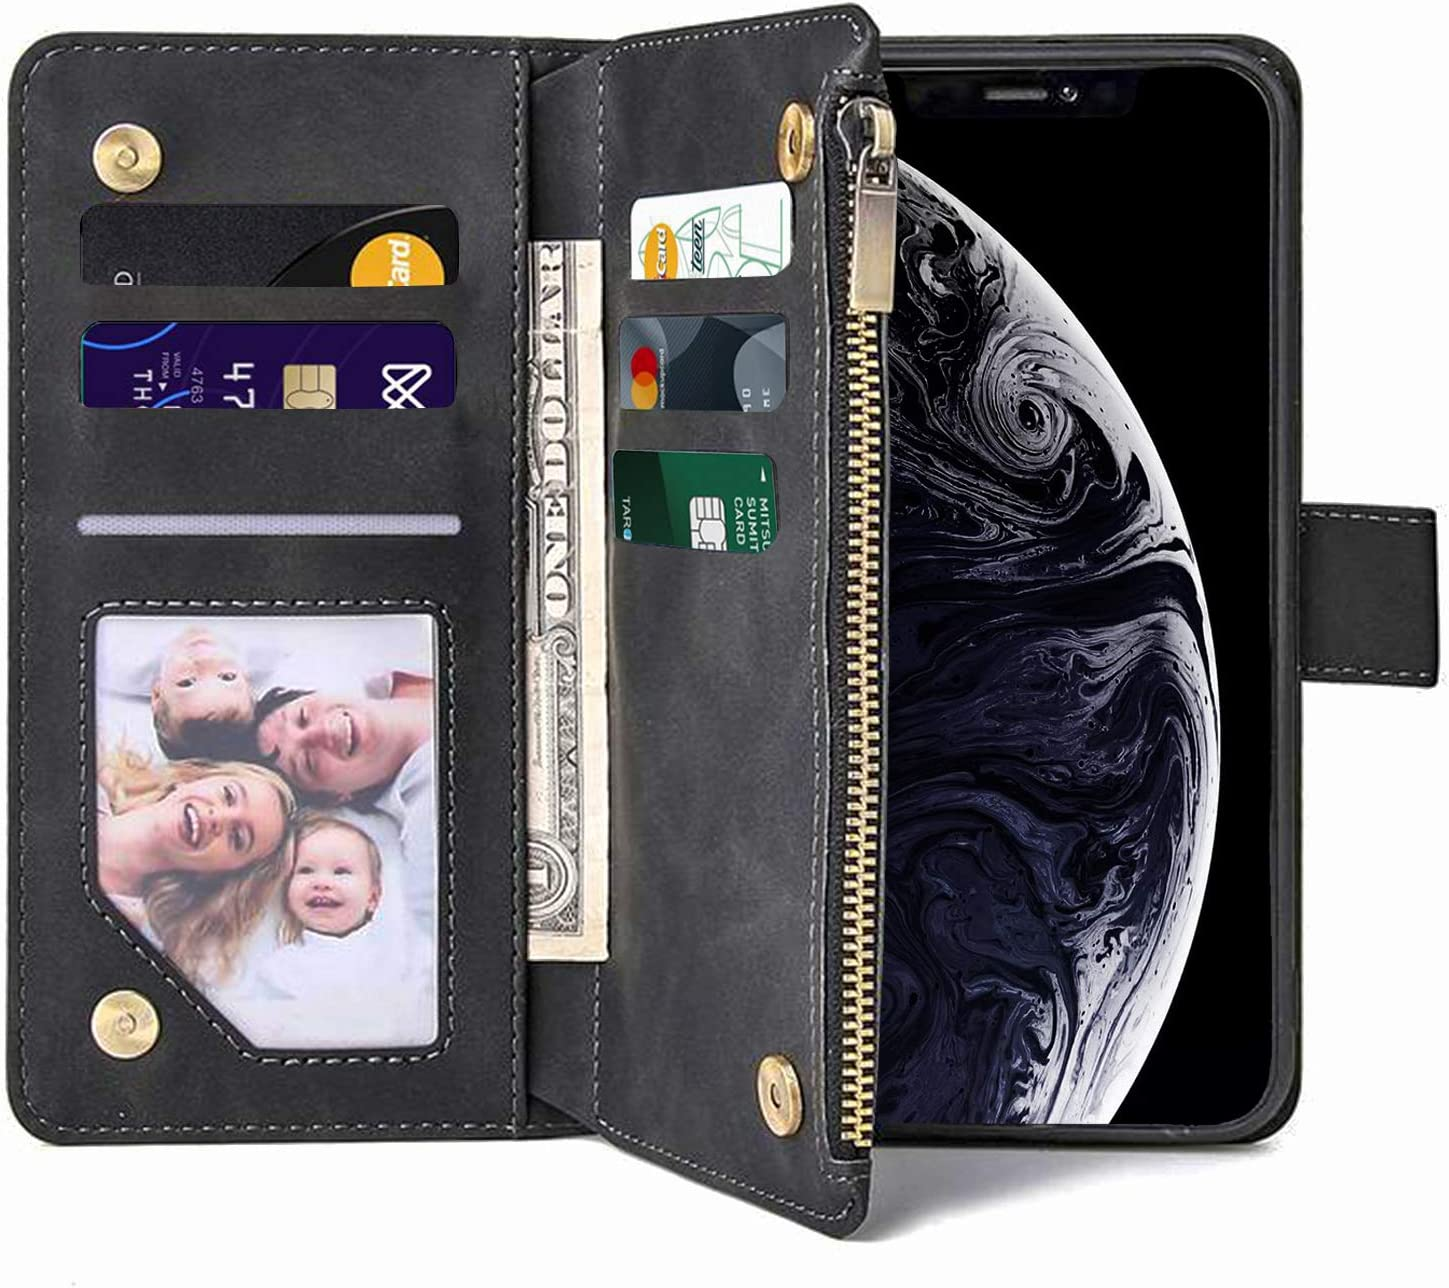 FRYGIKU iPhone 11 Wallet Case, iPhone 11 Case with Card Holder, Flip Case with Magnetic Closure Adjustable with Kickstand TPU Cover Shockproof Case for iPhone 11 6.1 Inch, Wireless Charging, Black